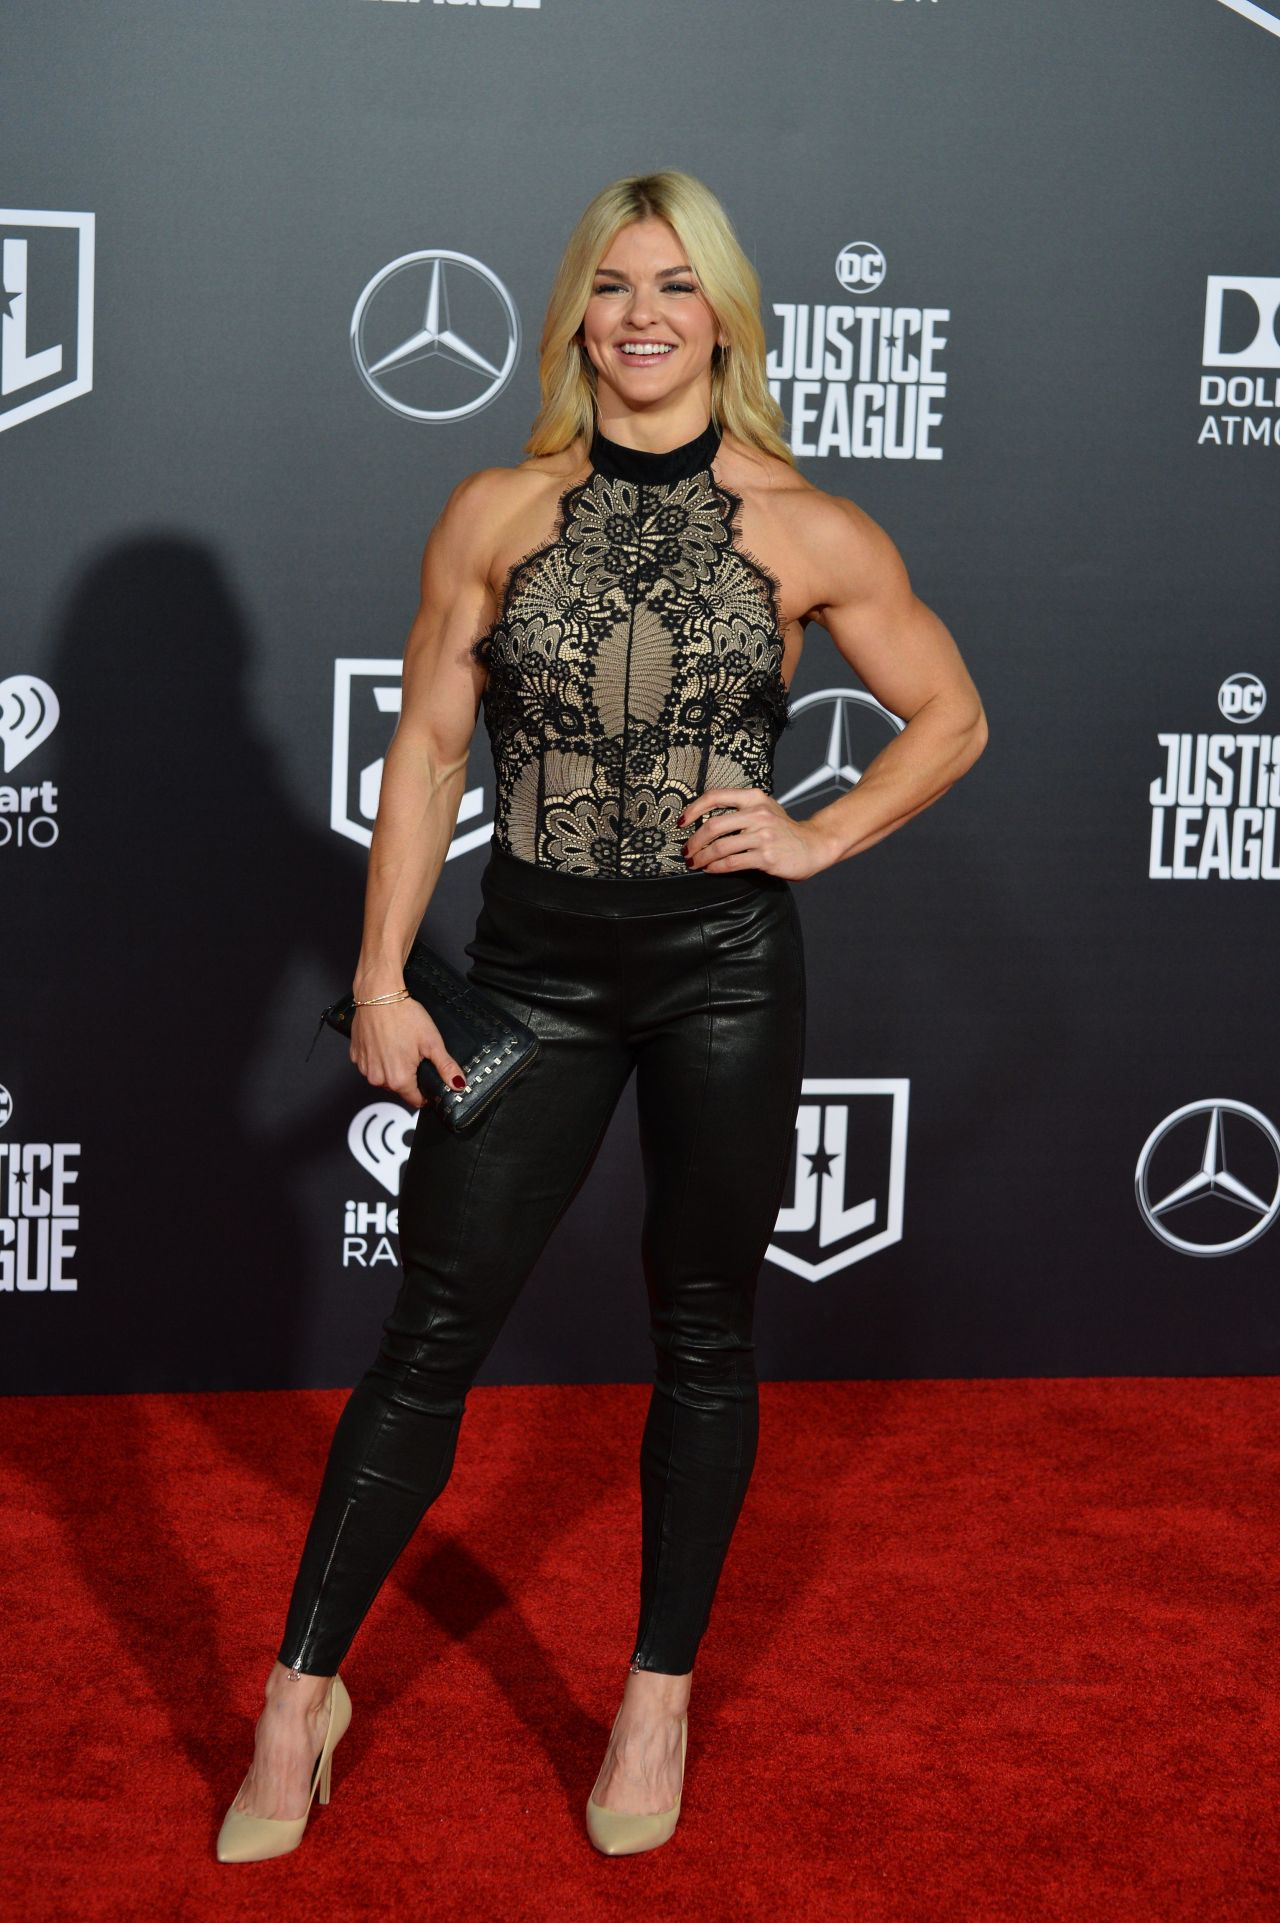 Brooke Ence Justice League Red Carpet In Los Angeles